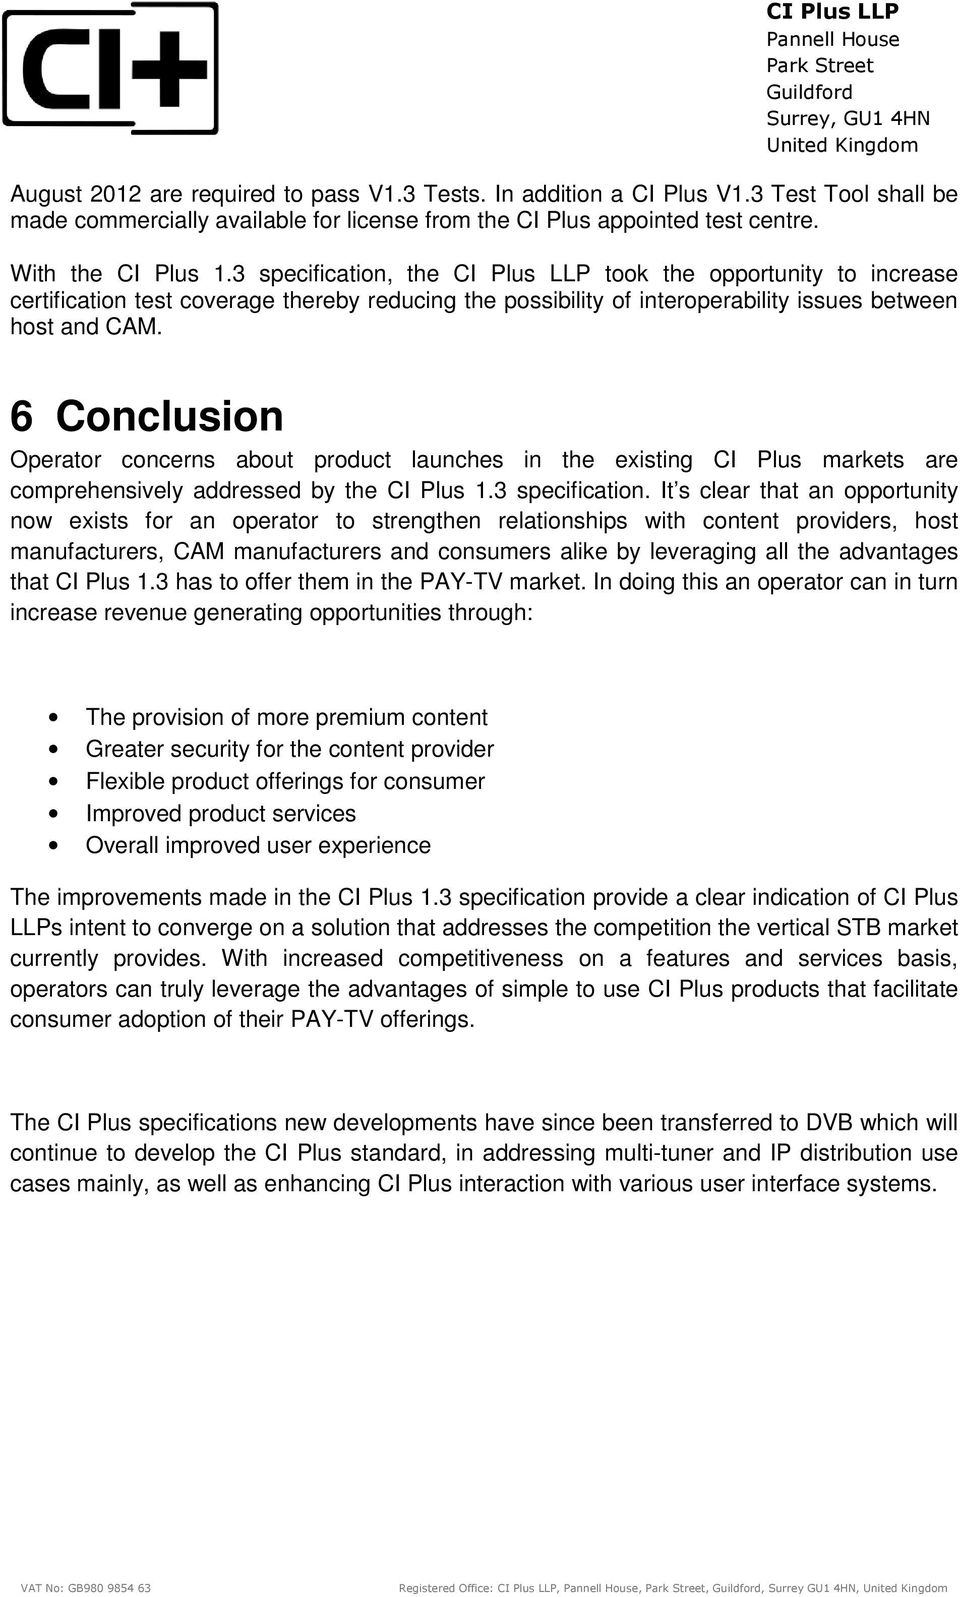 6 Conclusion Operator concerns about product launches in the existing CI Plus markets are comprehensively addressed by the CI Plus 1.3 specification.